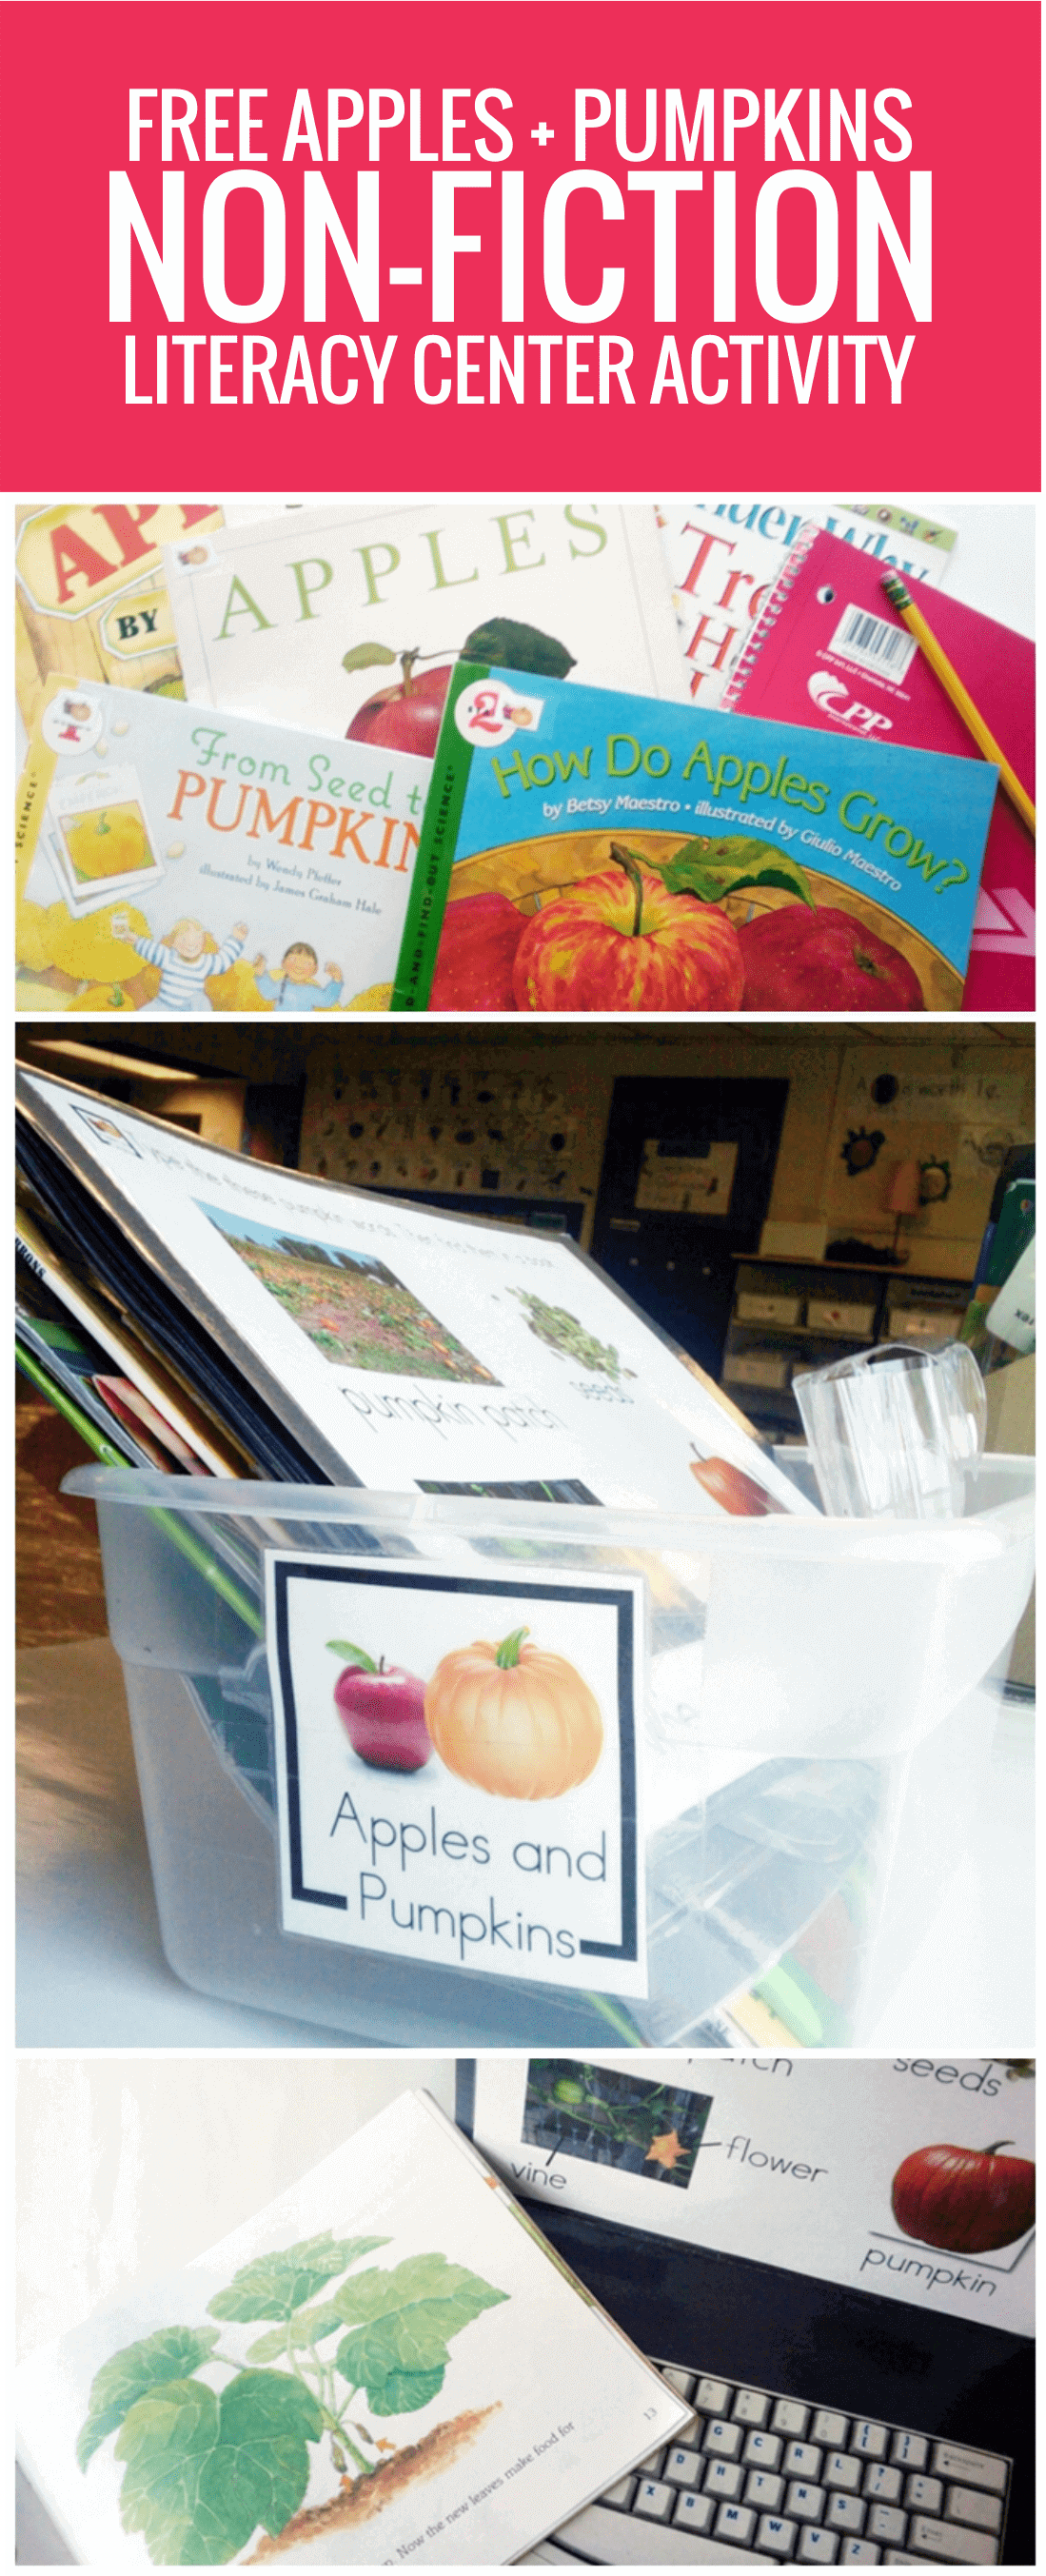 Apples and Pumpkins Non-fiction Literacy Center Activity Set